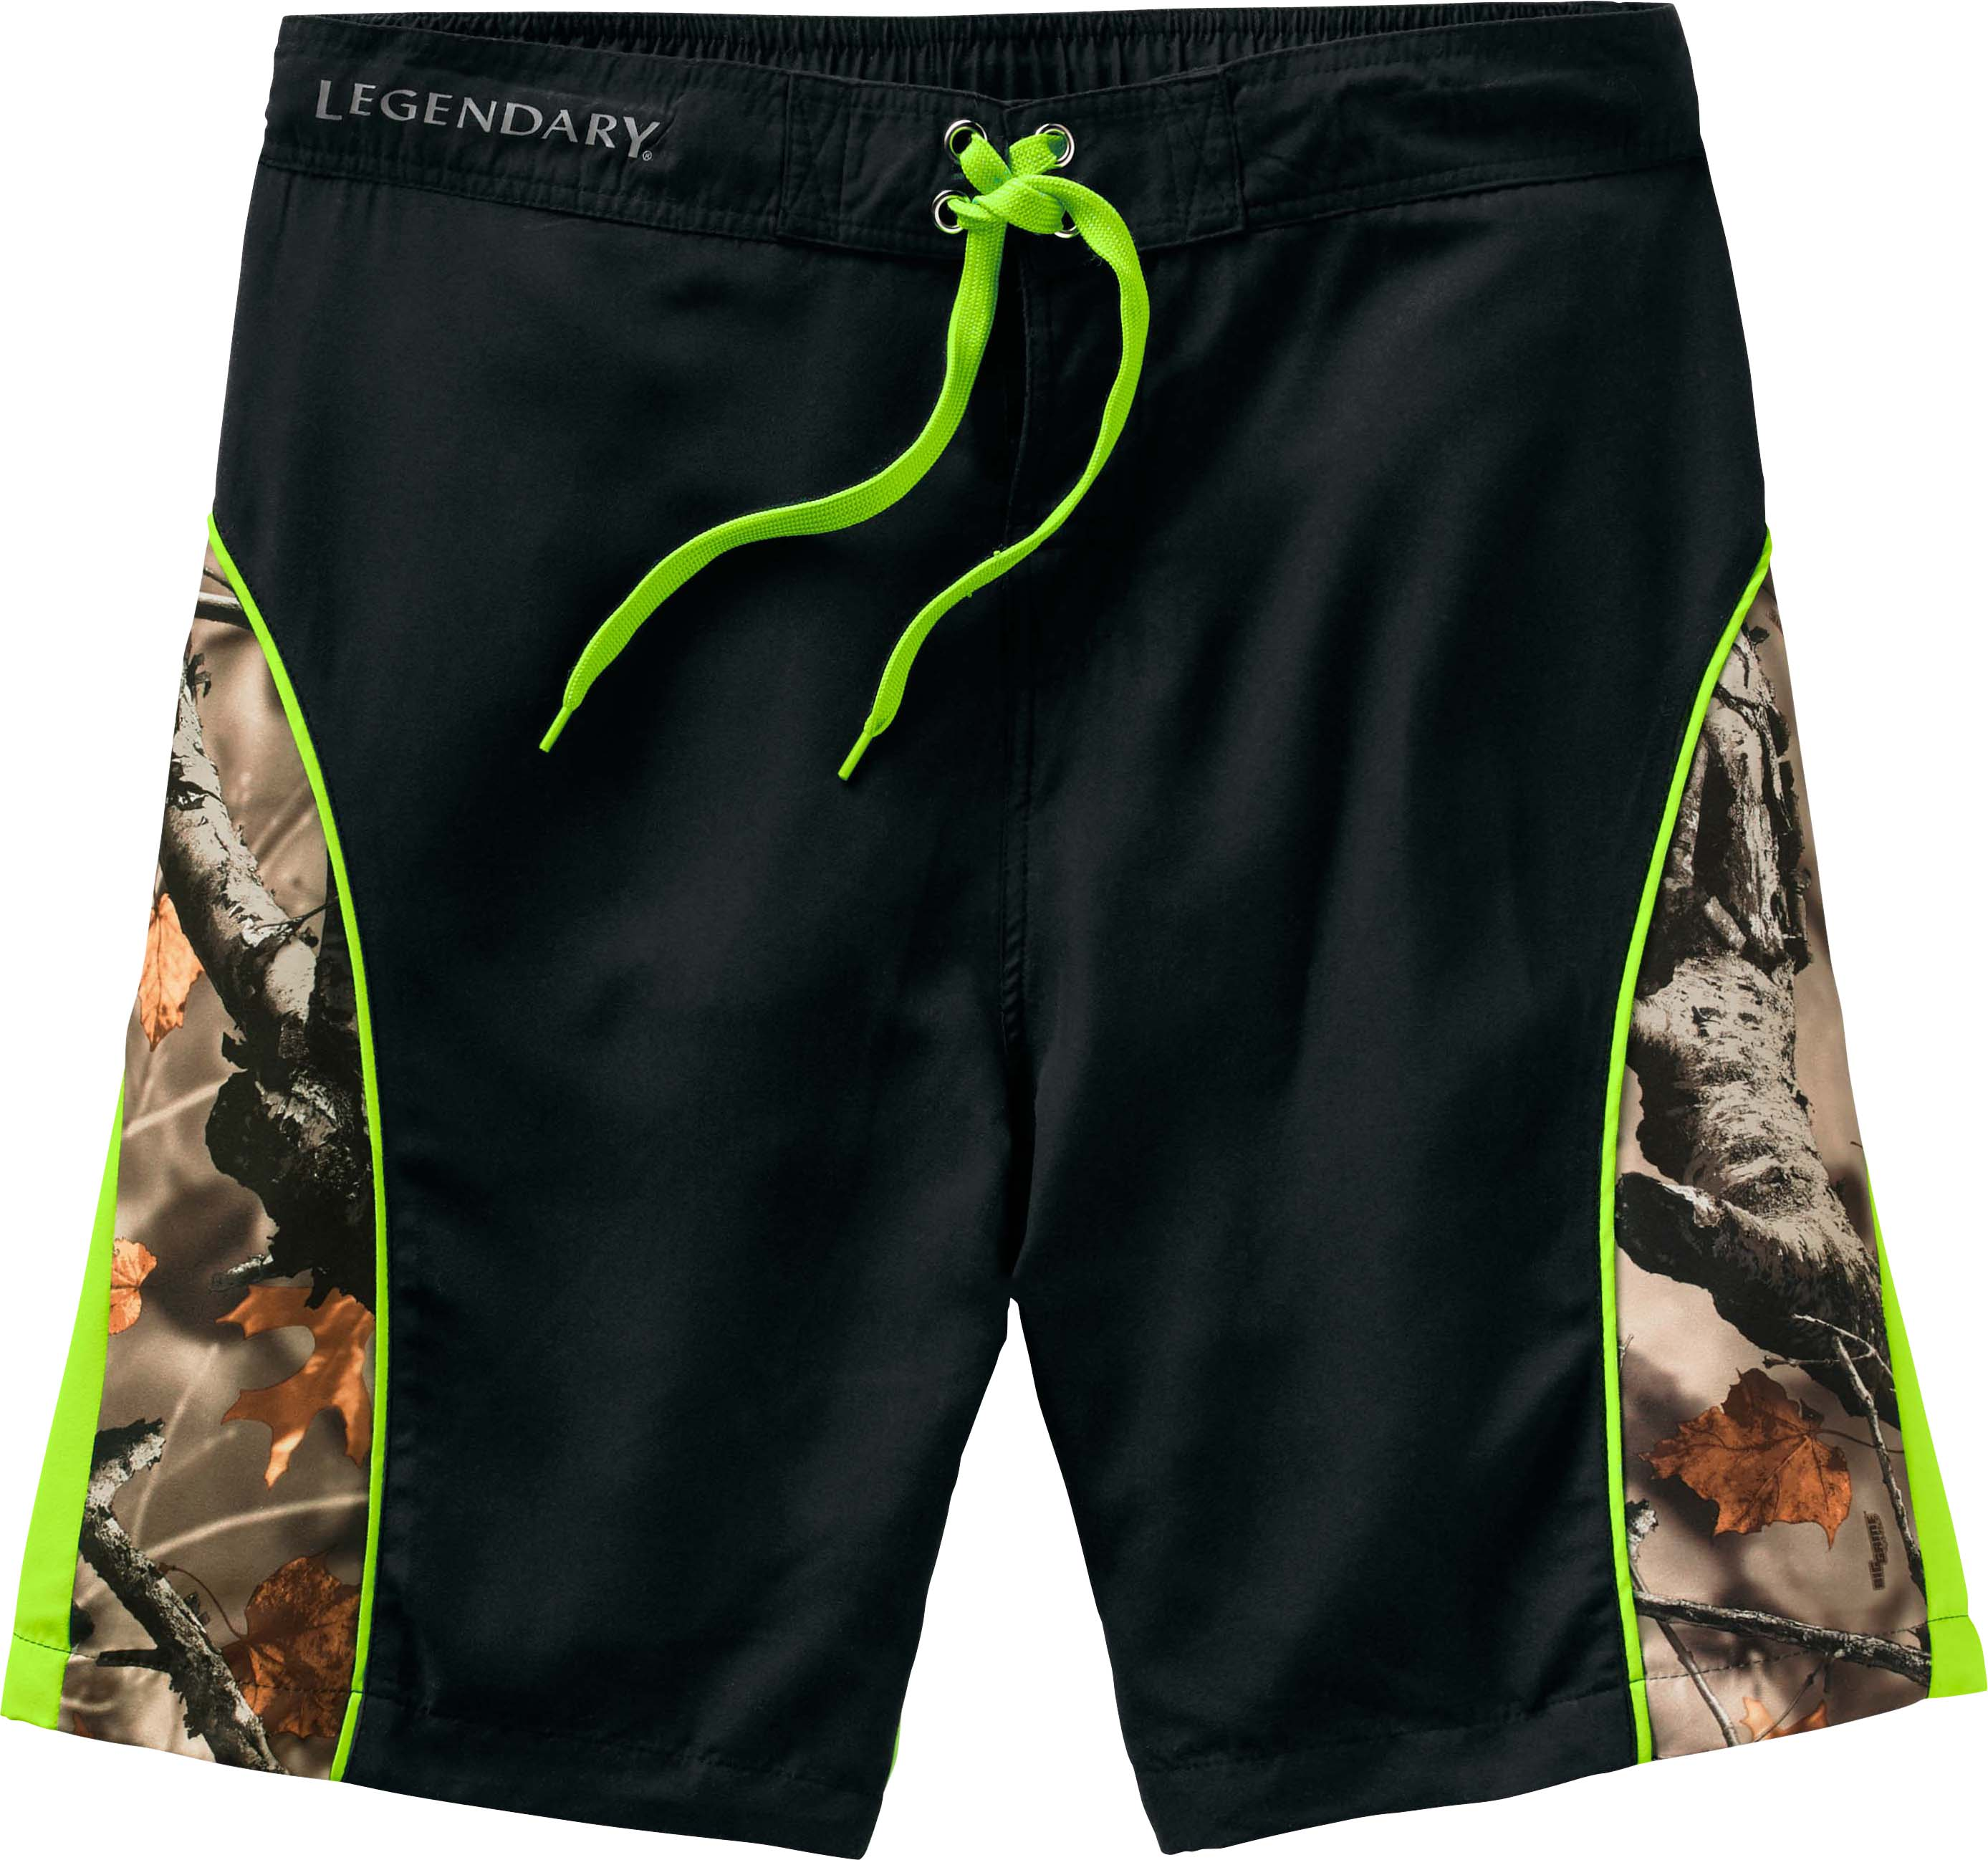 894d51022f Mens Shoreline Swim Trunks | Legendary Whitetails